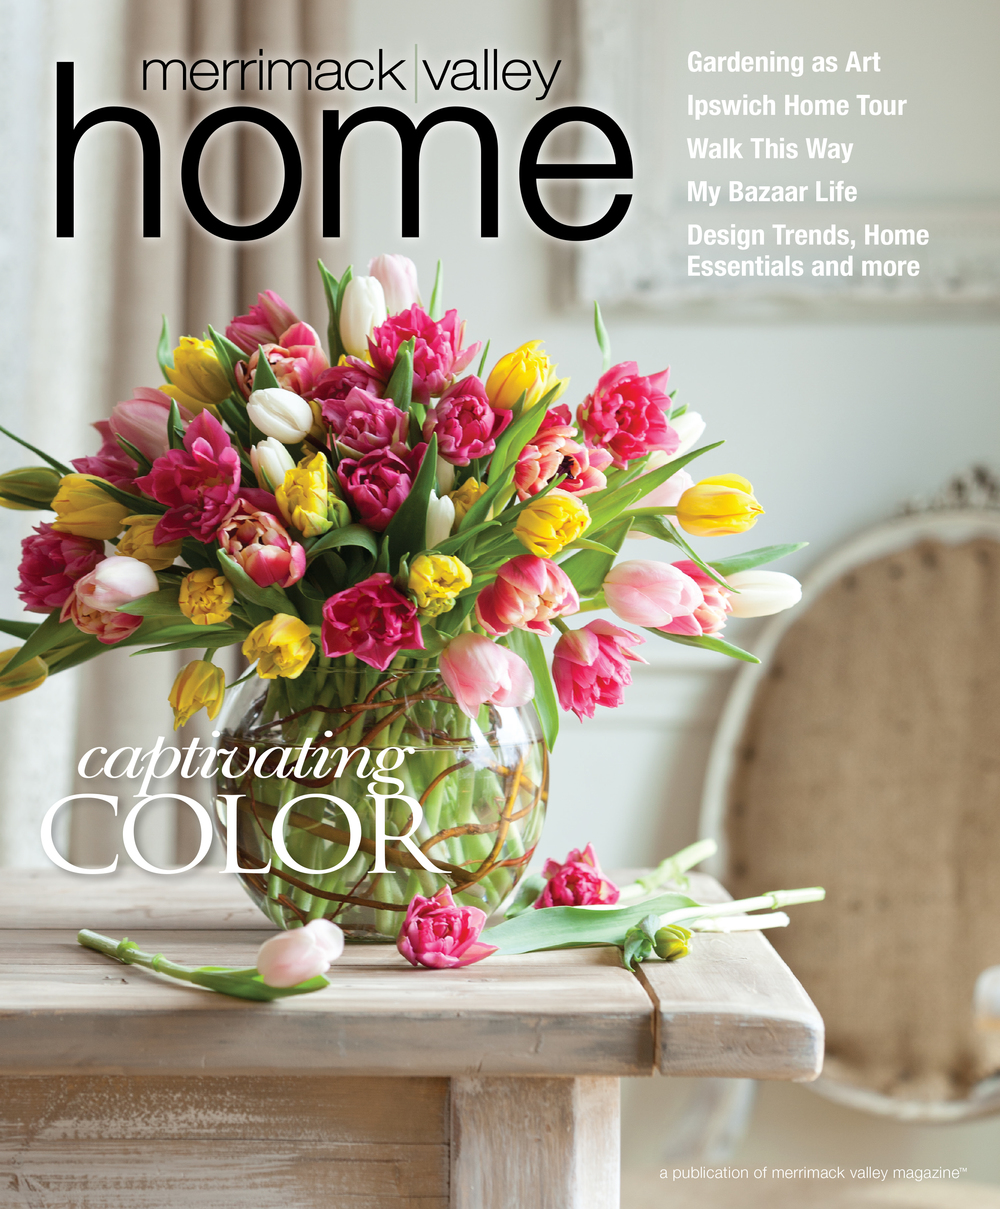 merrimack-valley-spring-flowers-cover-interior-design.jpg